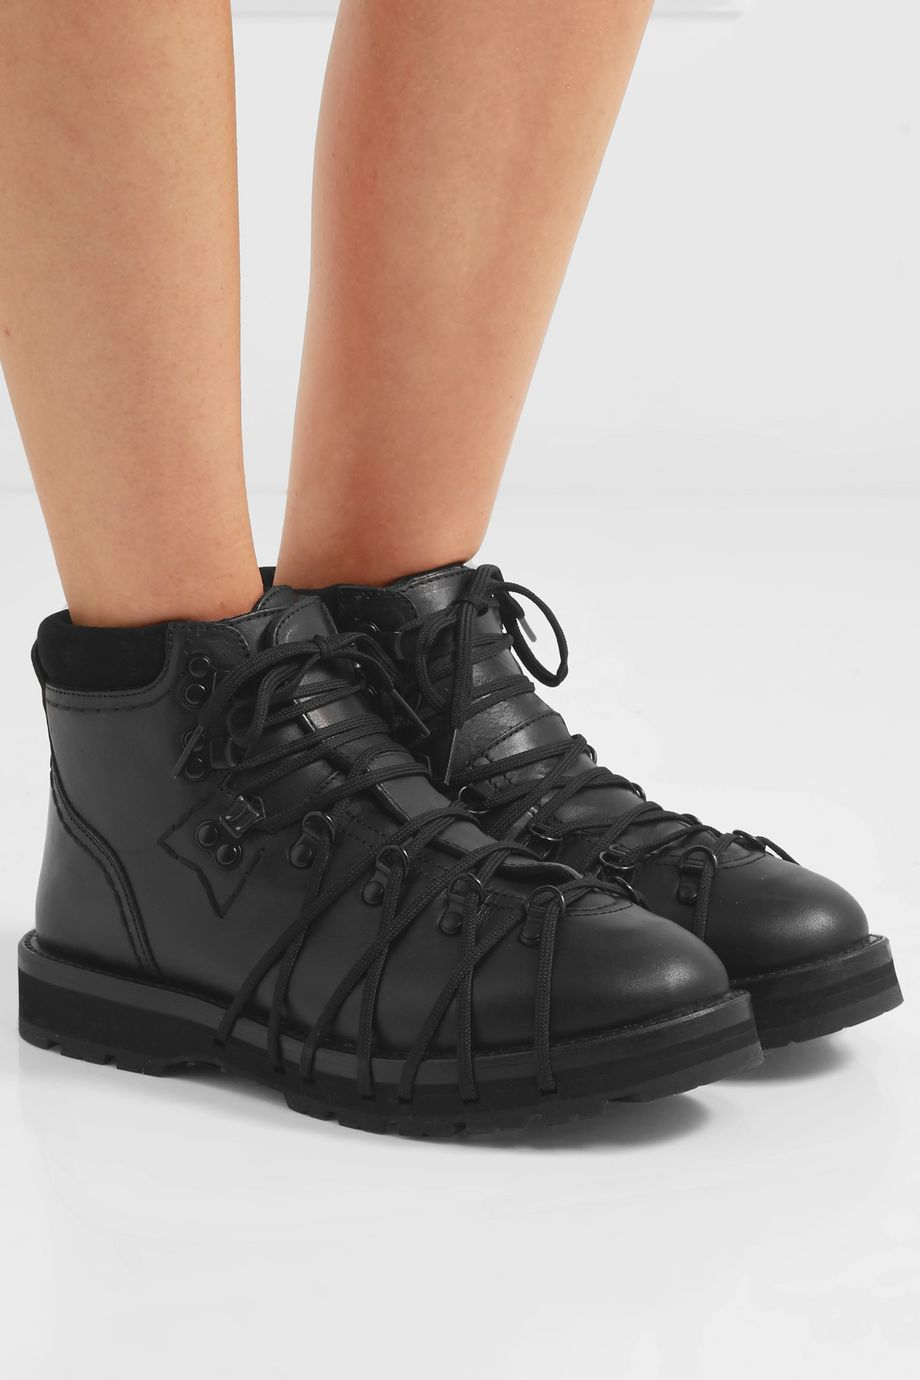 Moncler Genius + 6 Noir Kei Ninomiya suede-trimmed leather ankle boots